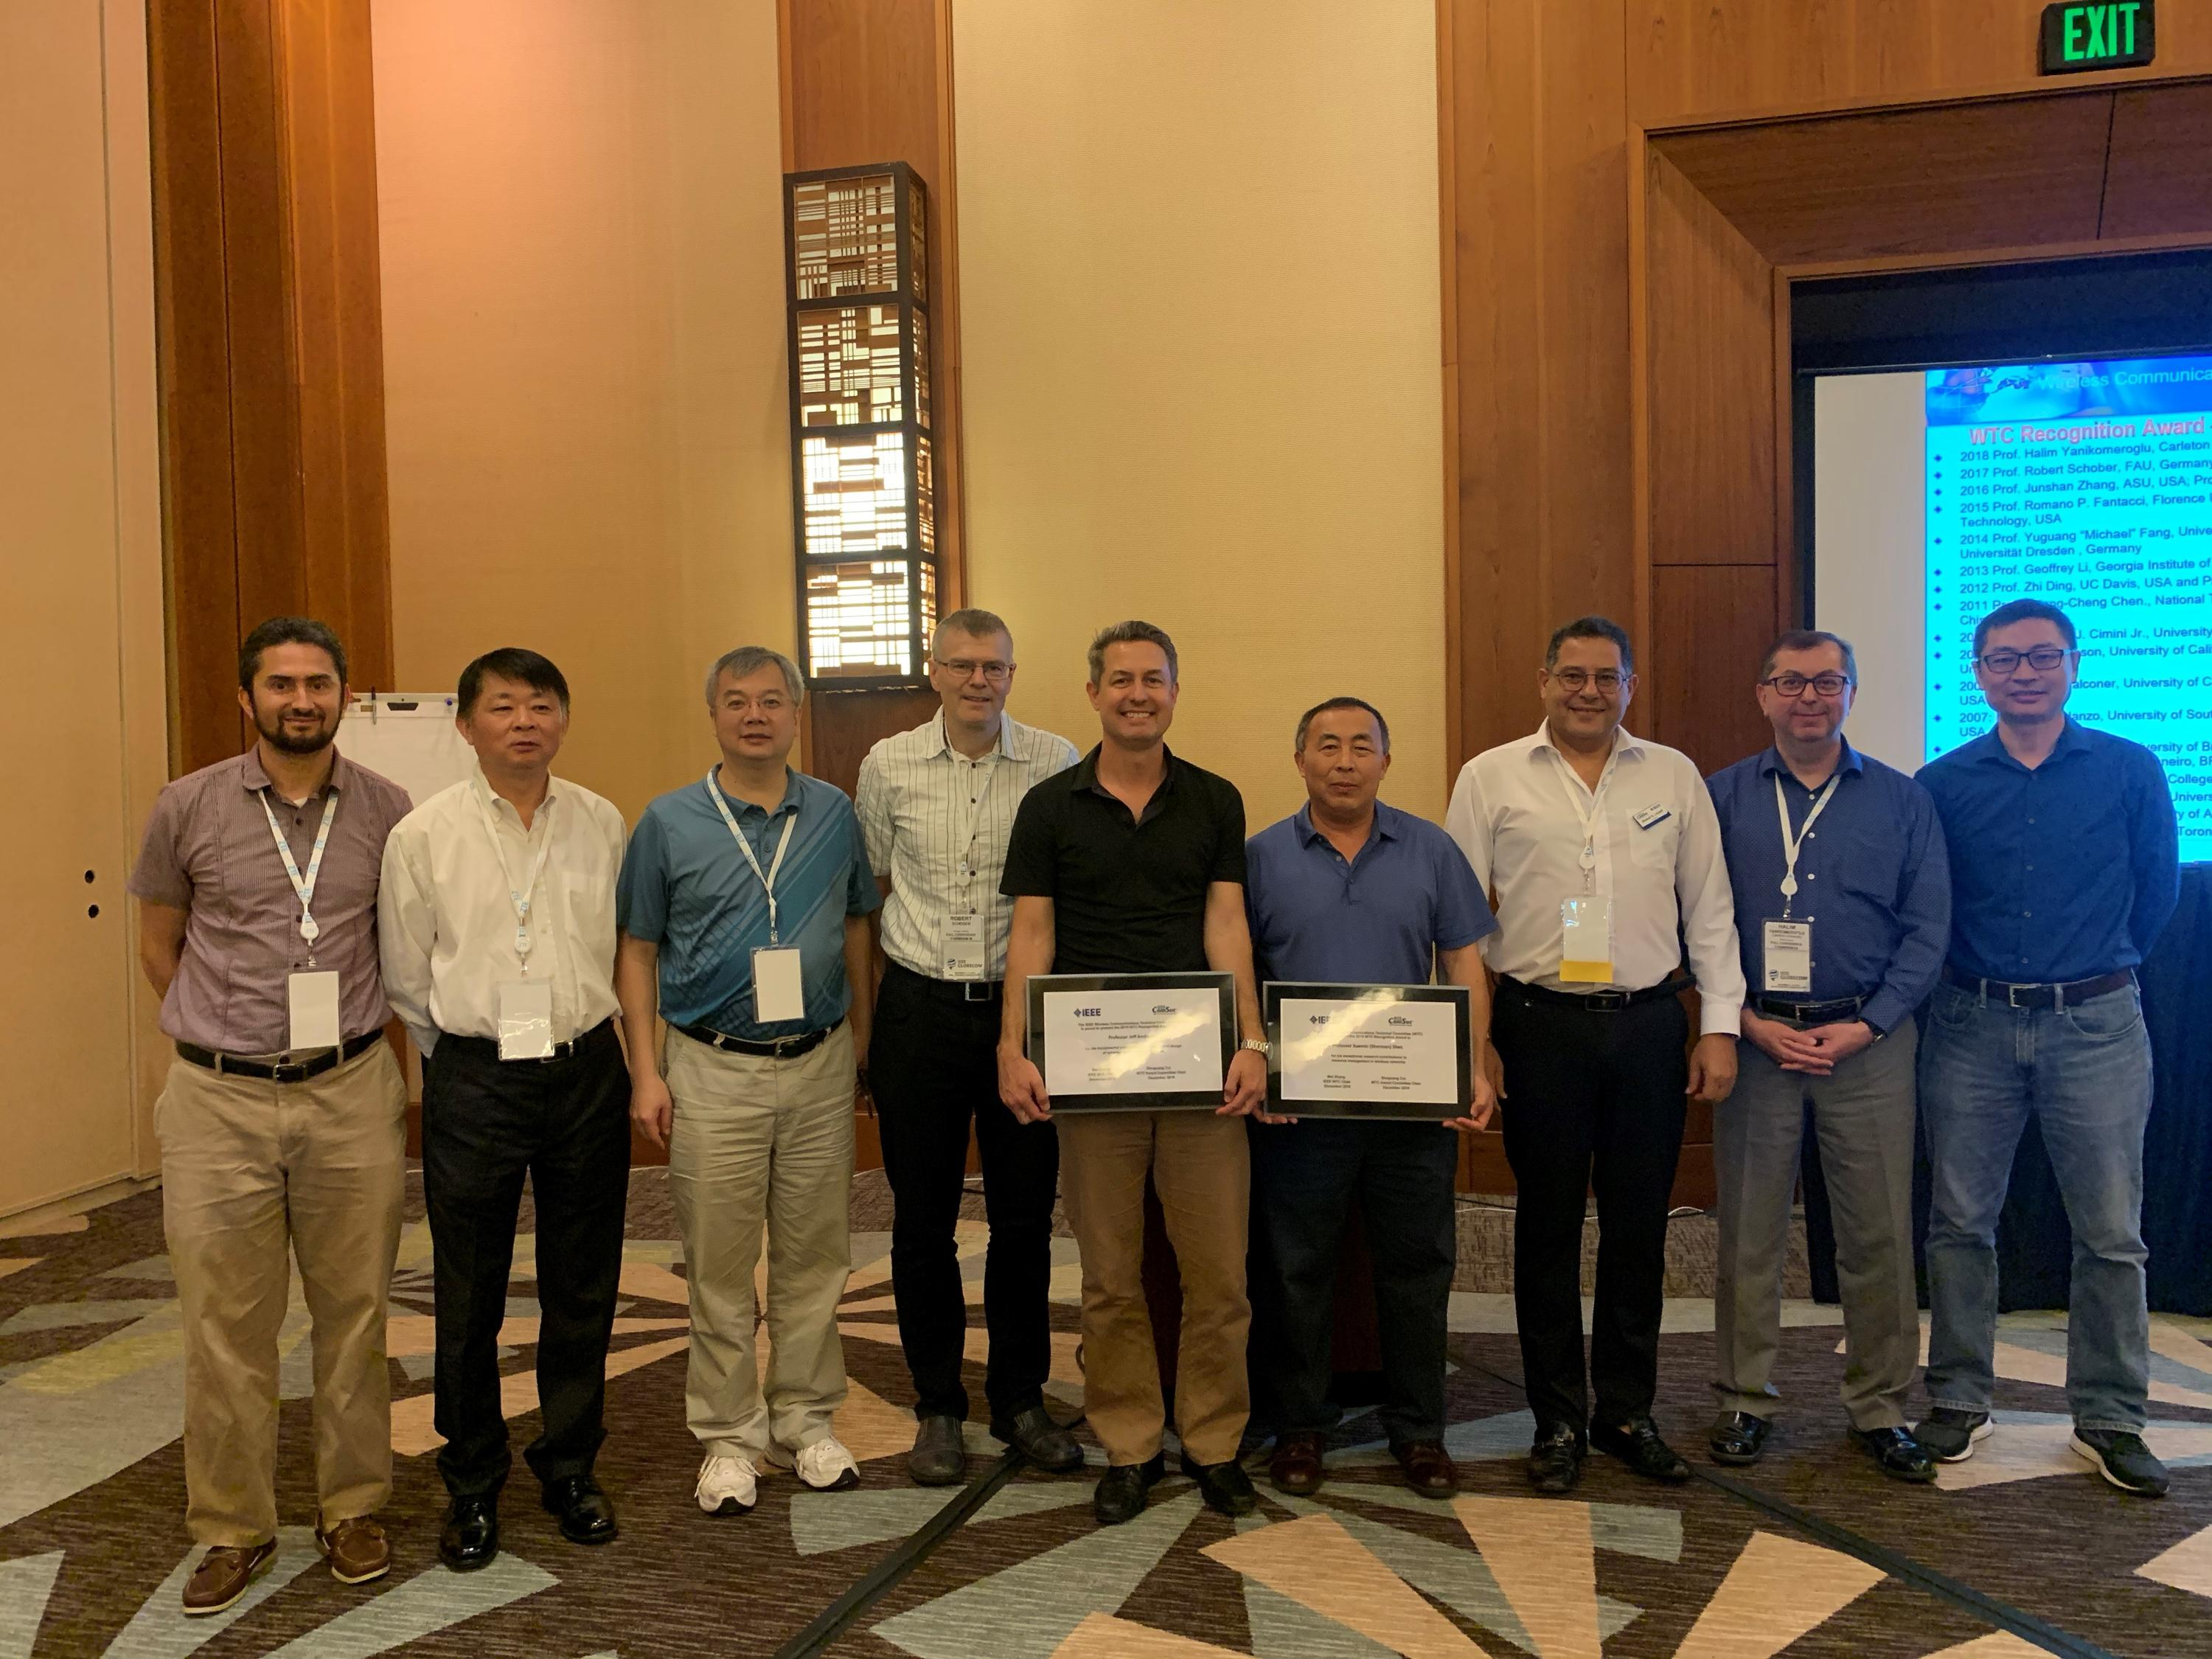 Prof. Shen has received the 2019 Wireless Communications Technical Committee (WTC) Recognition Award